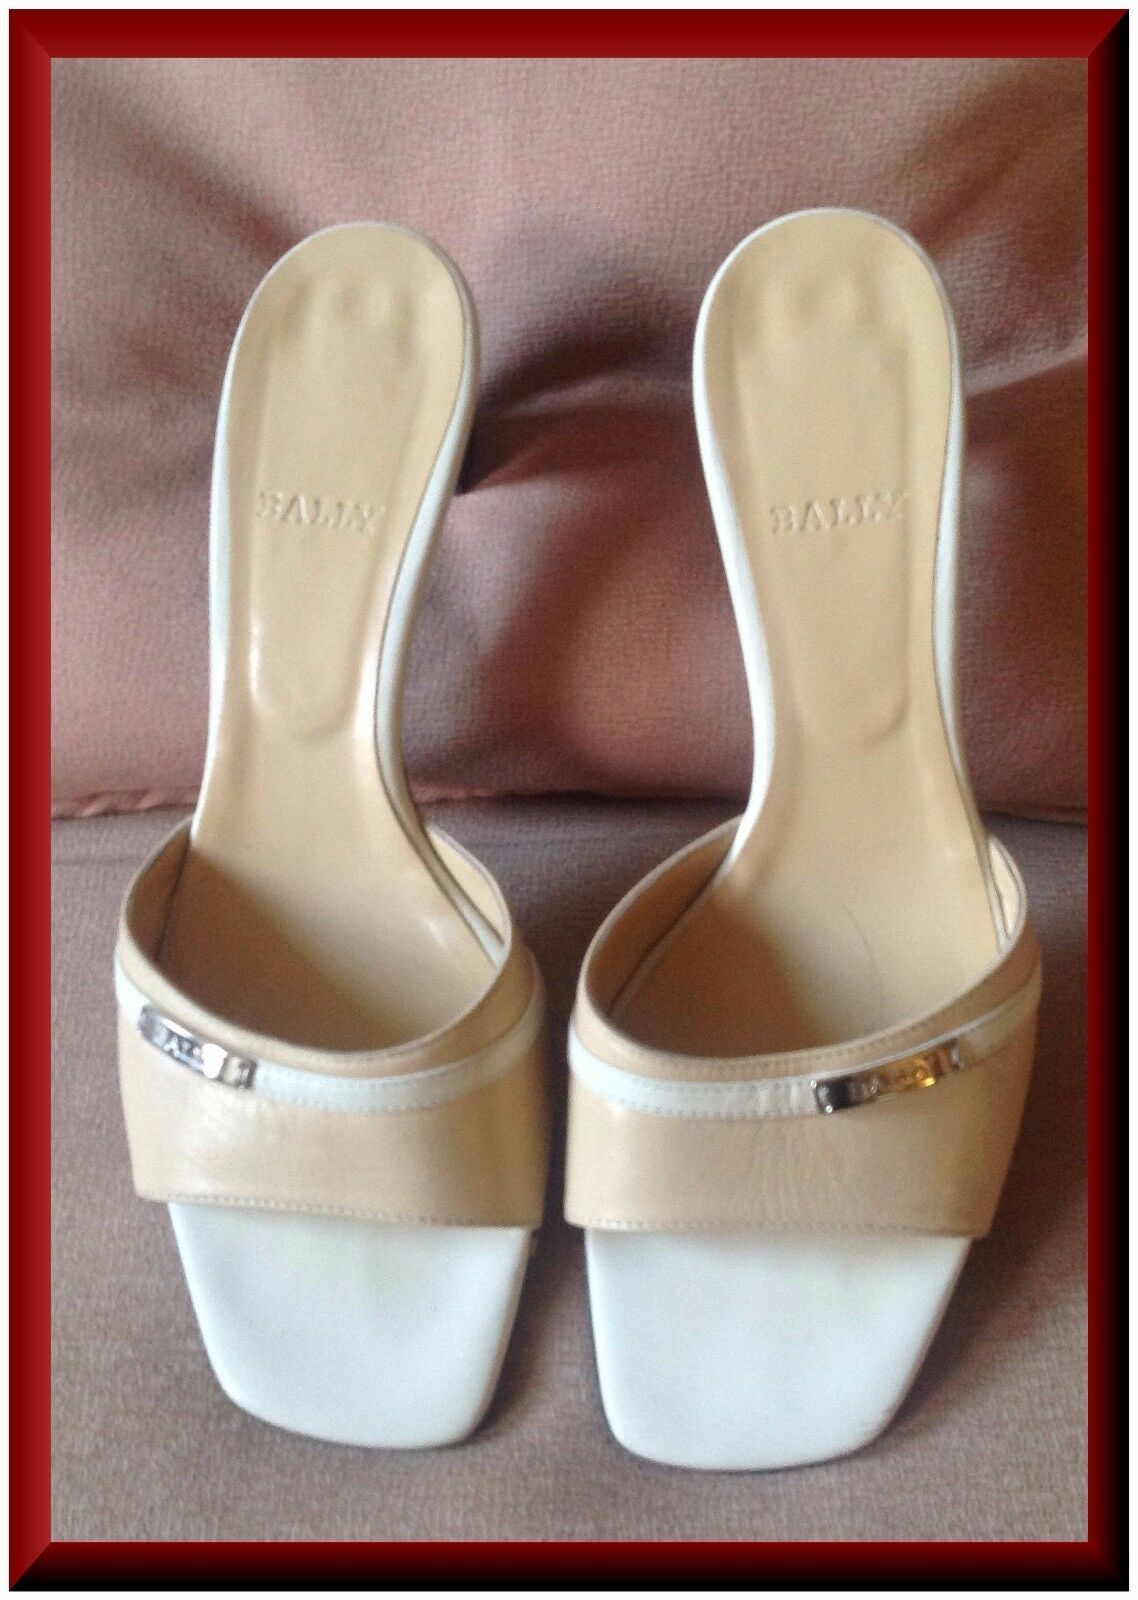 Bally,  femmes Naked Couleur Leather medium high heel, US 8 Mules r hot again